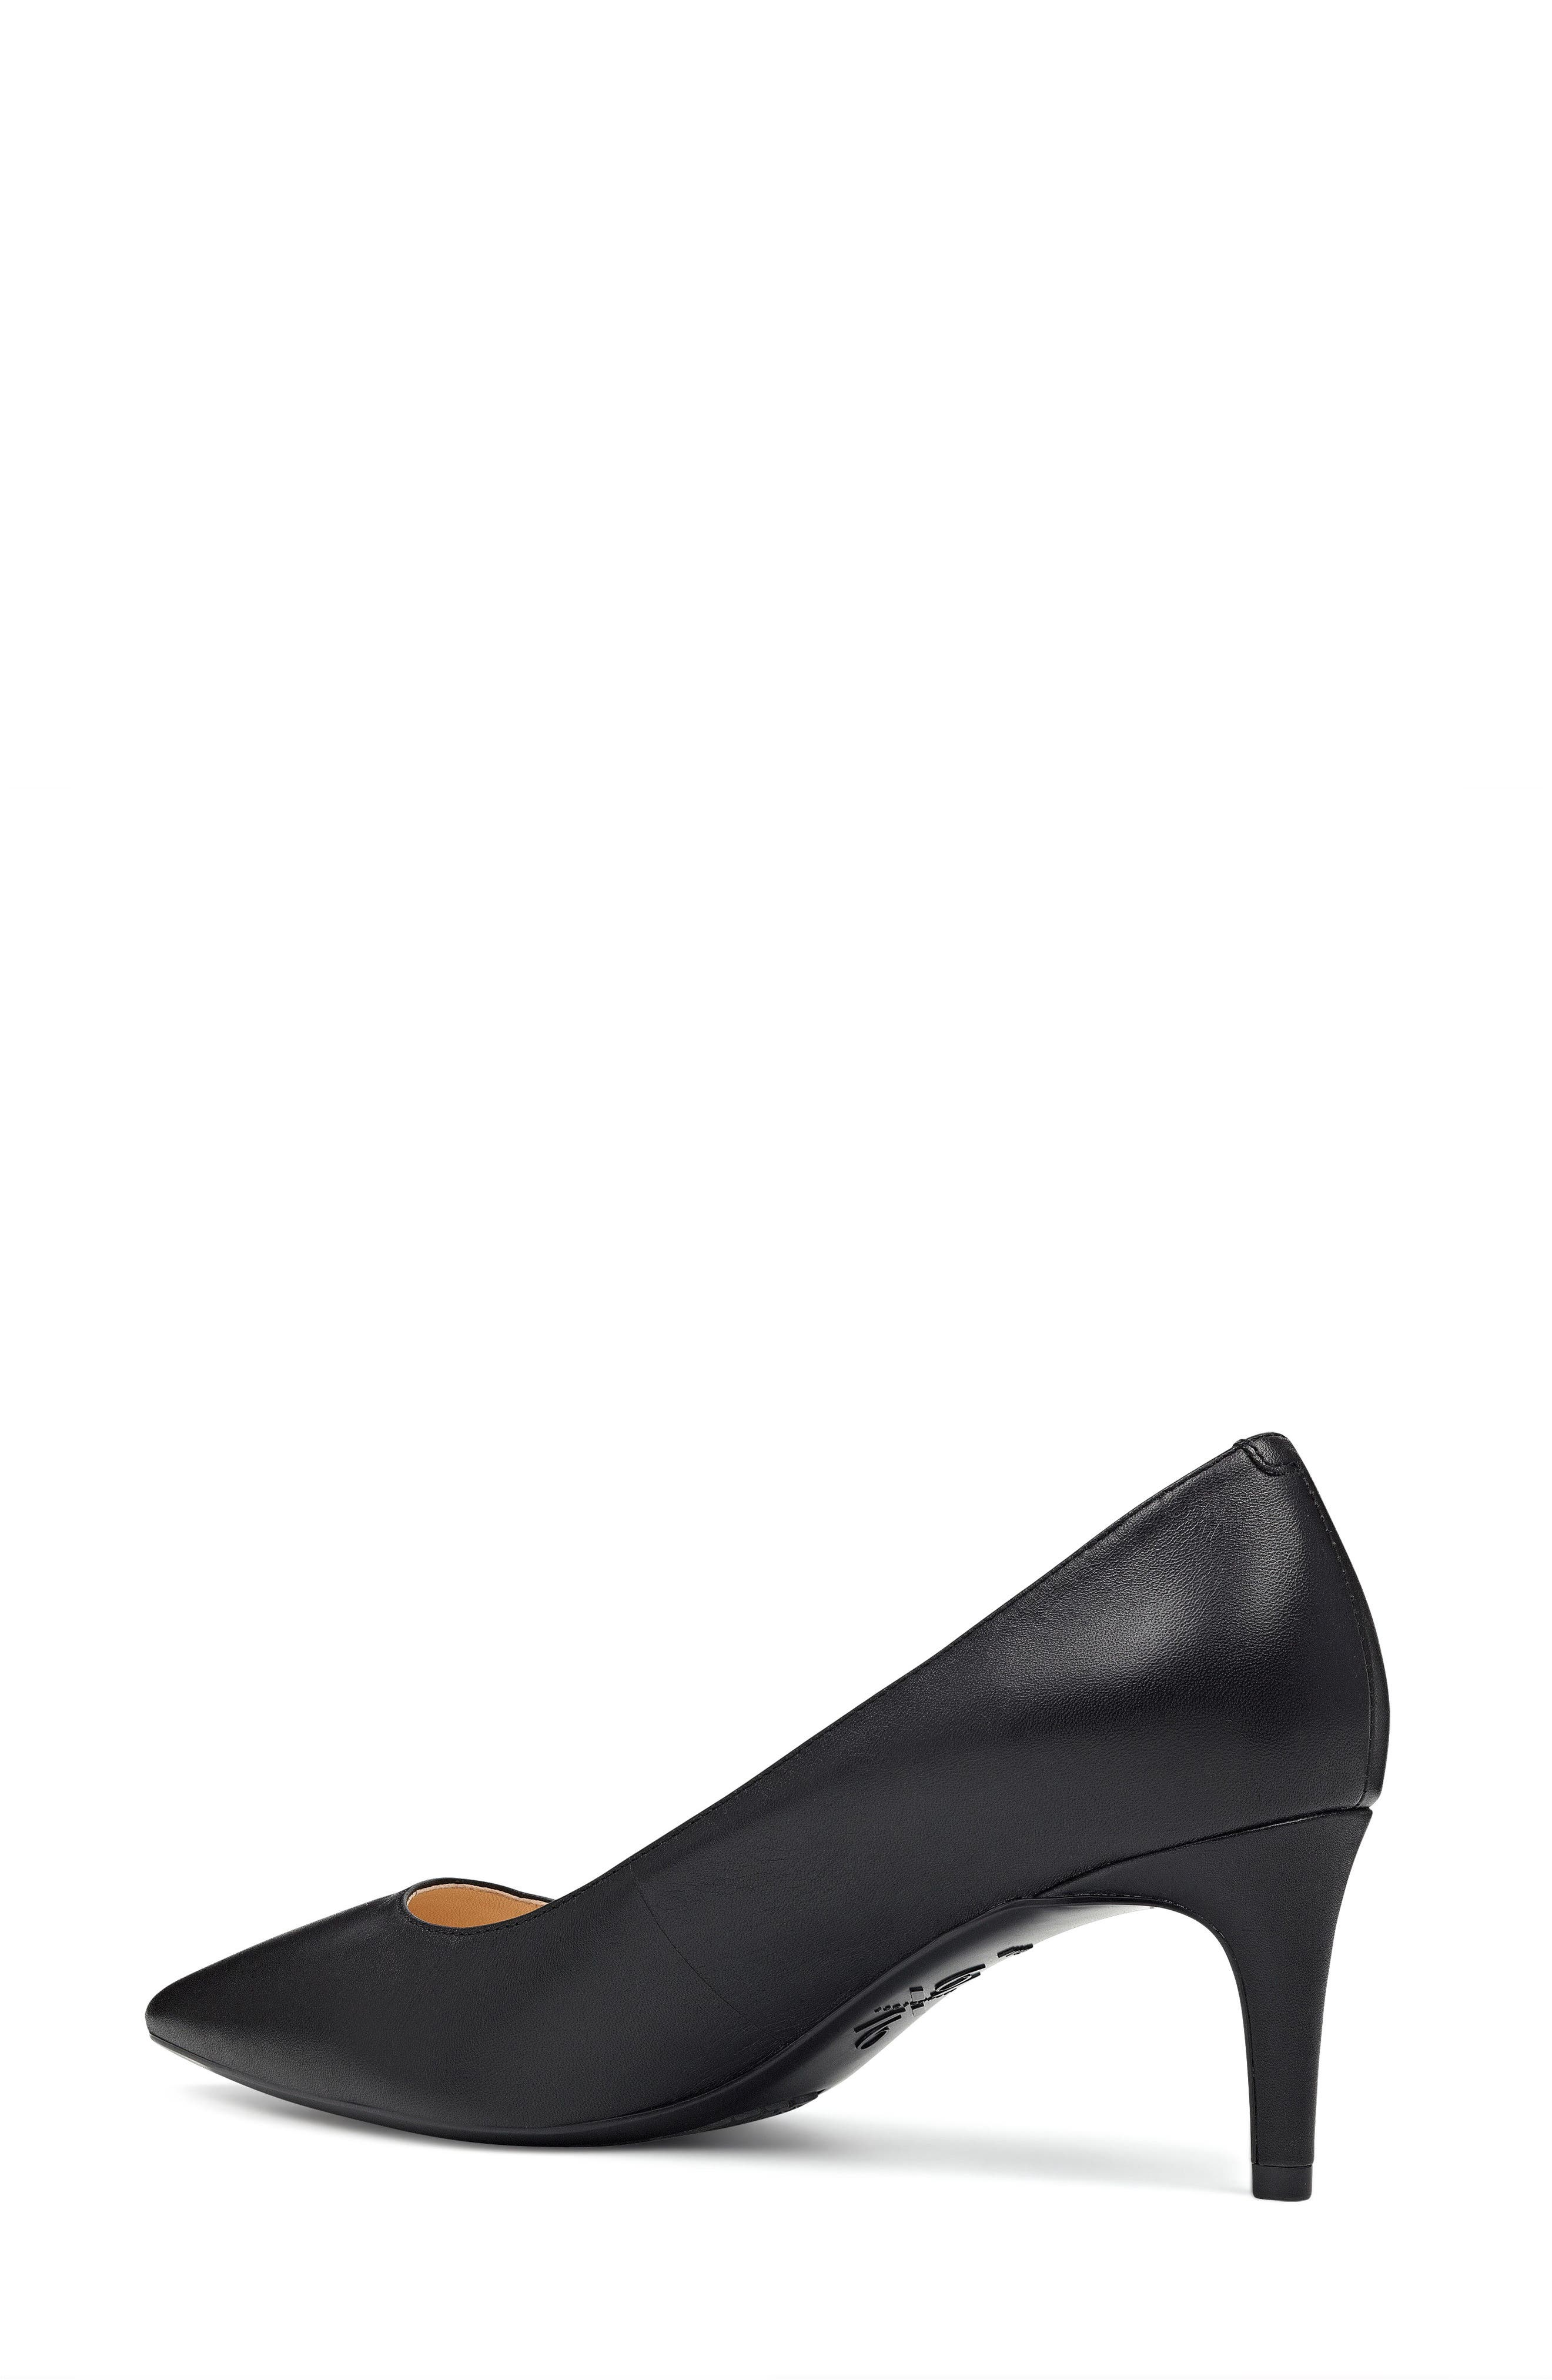 Soho Pointy Toe Pump,                             Alternate thumbnail 15, color,